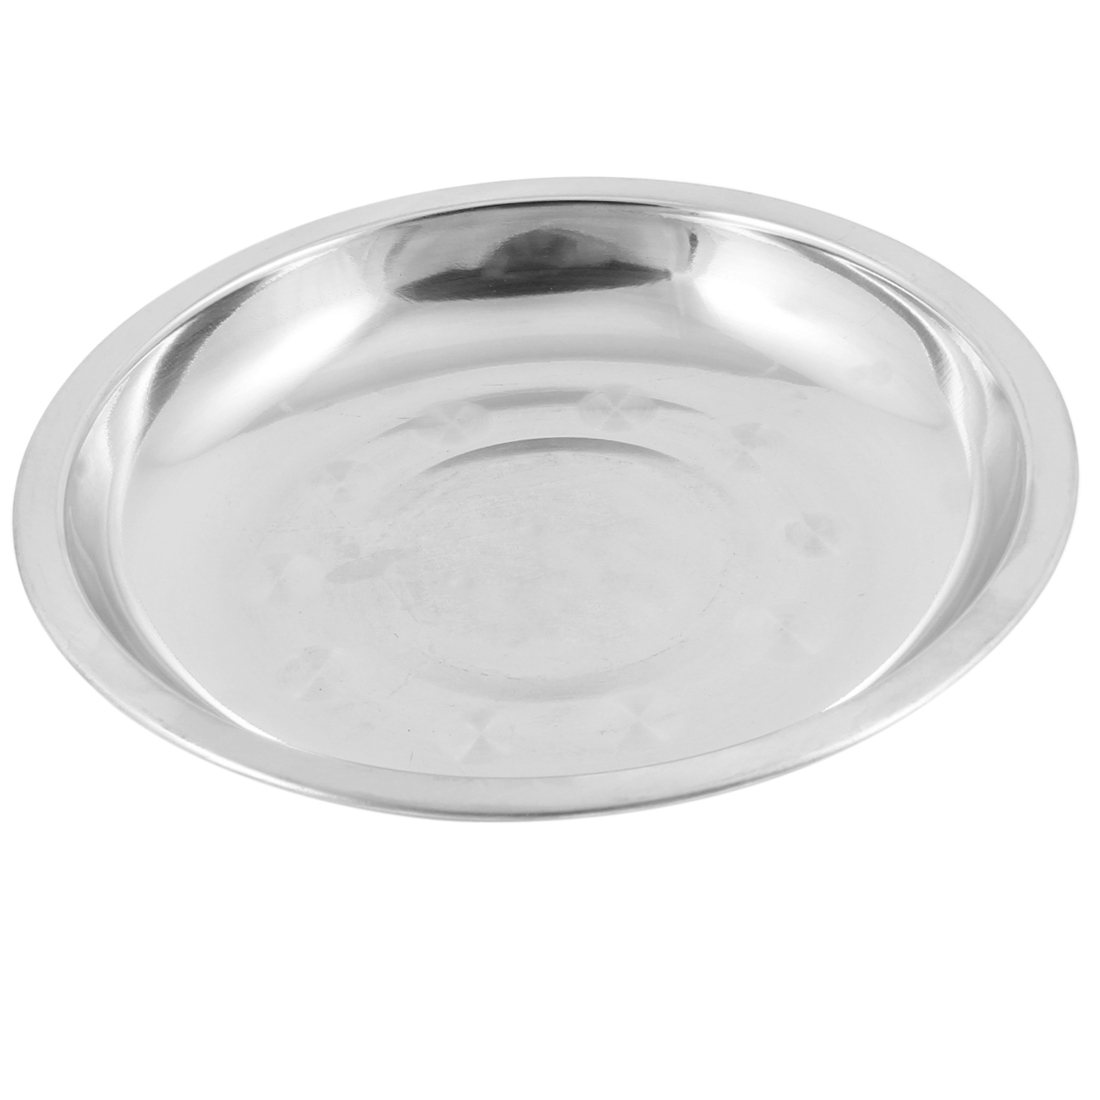 Camping 17.8cm Dia Stainless Steel Tableware Dinner Plate Food Container